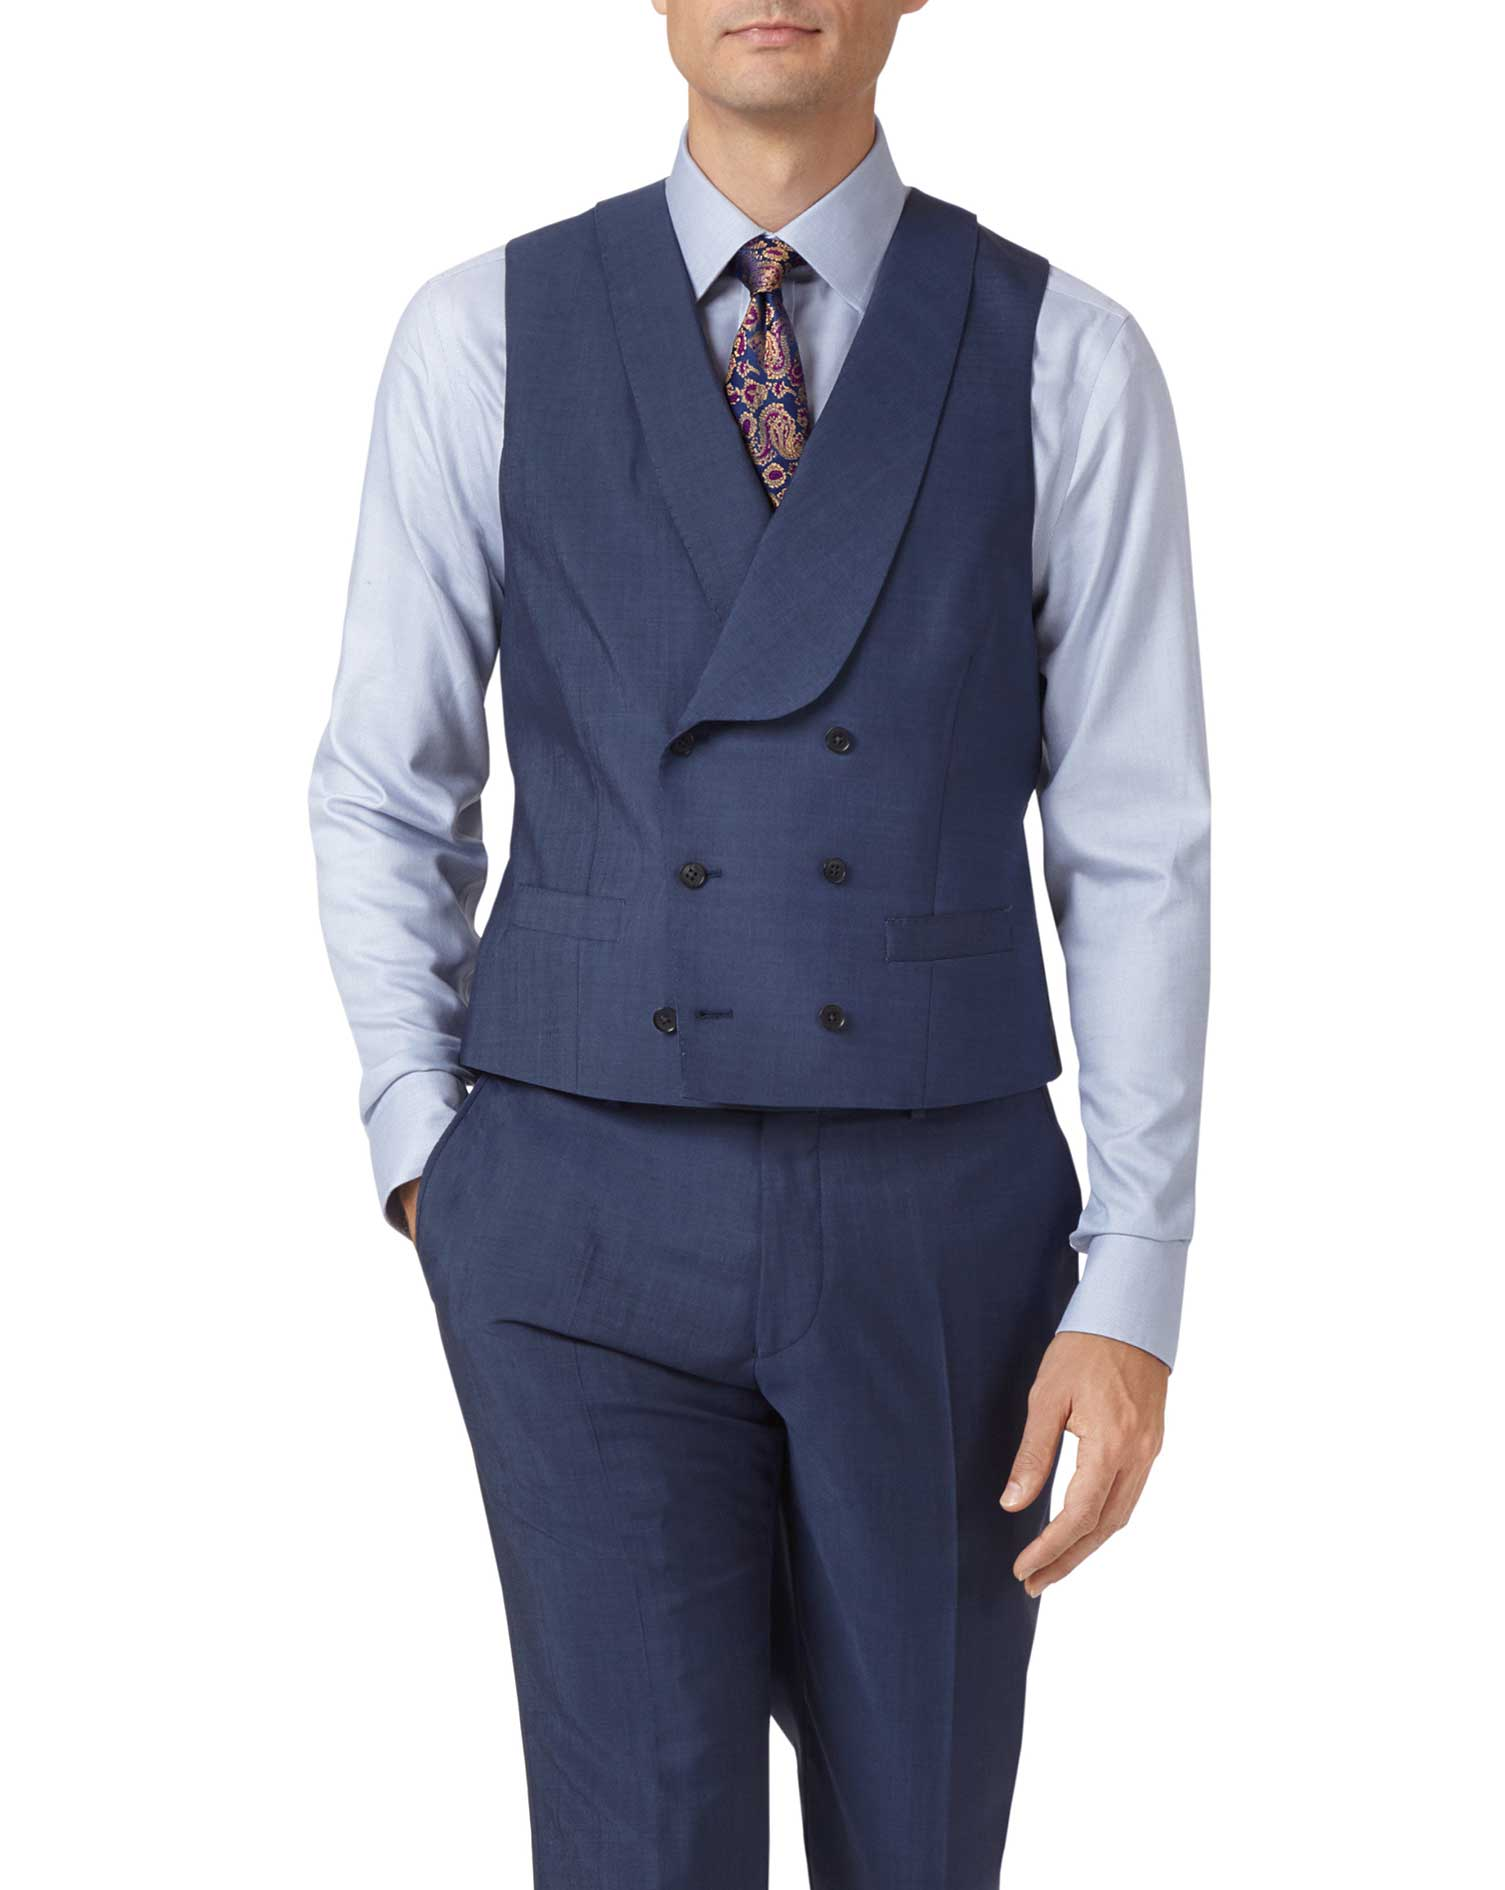 Blue Adjustable Fit Italian Wool Luxury Suit Viscose Waistcoat Size w42 by Charles Tyrwhitt